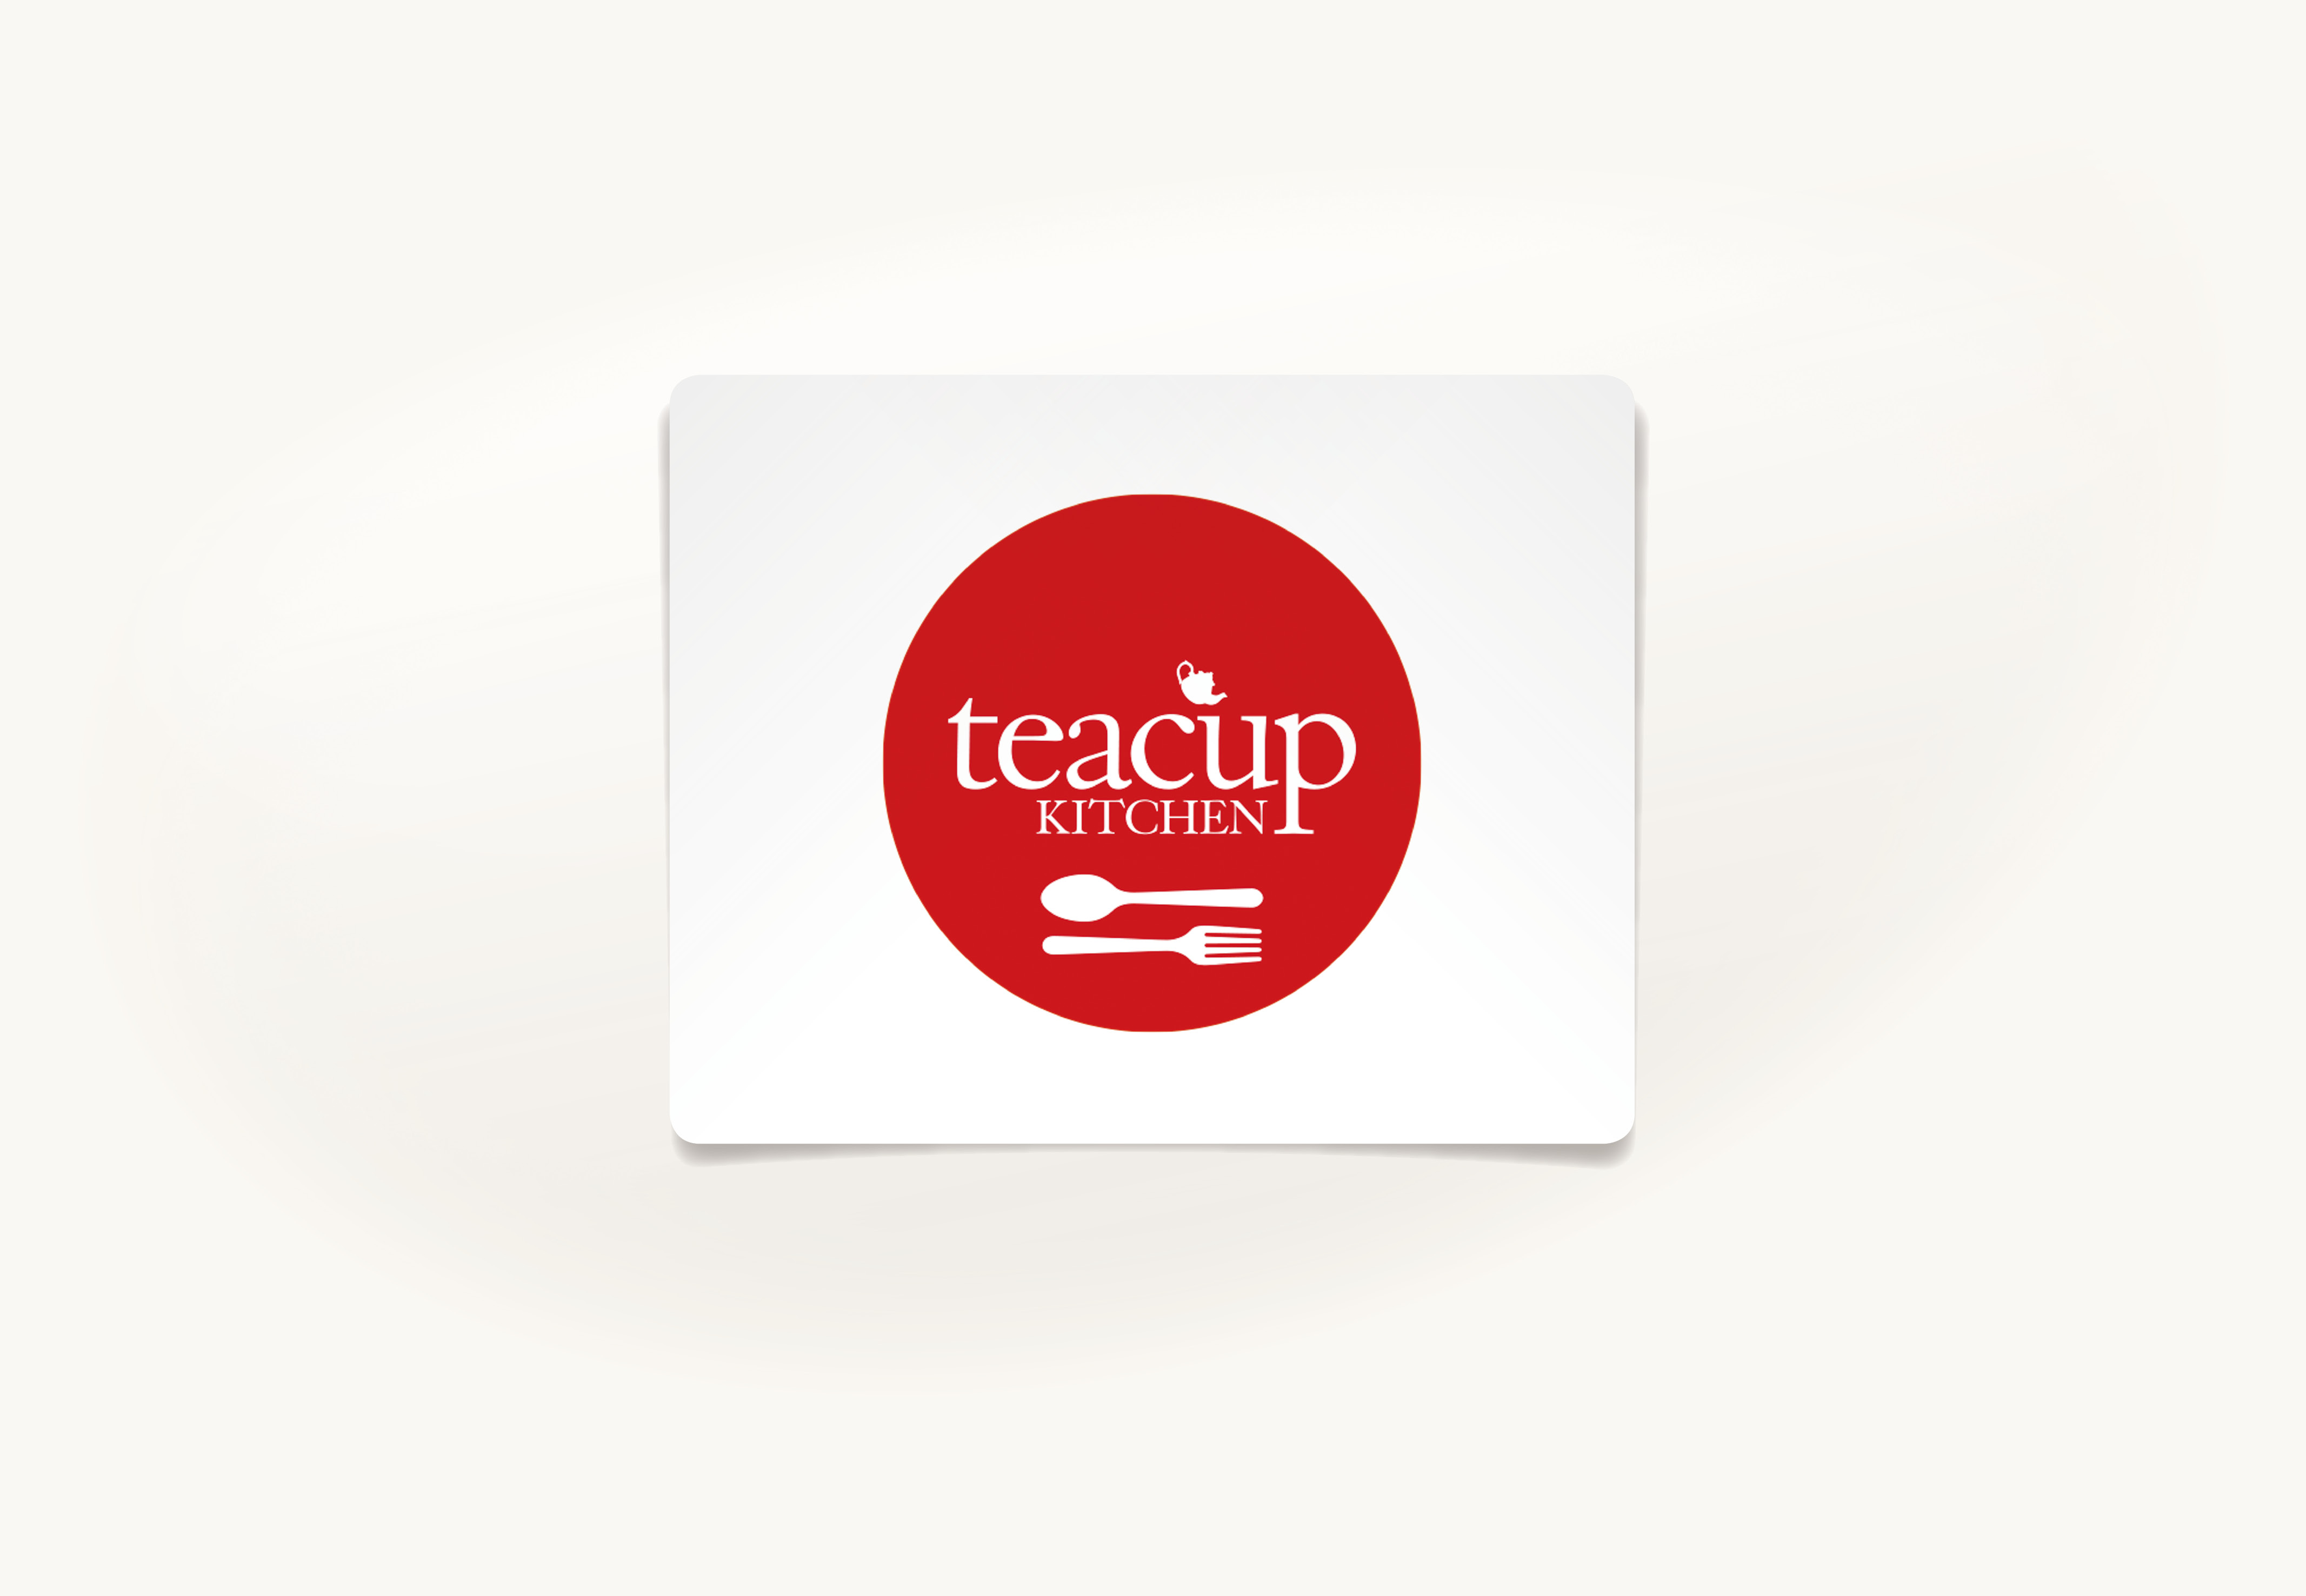 Teacup Kitchen Logo